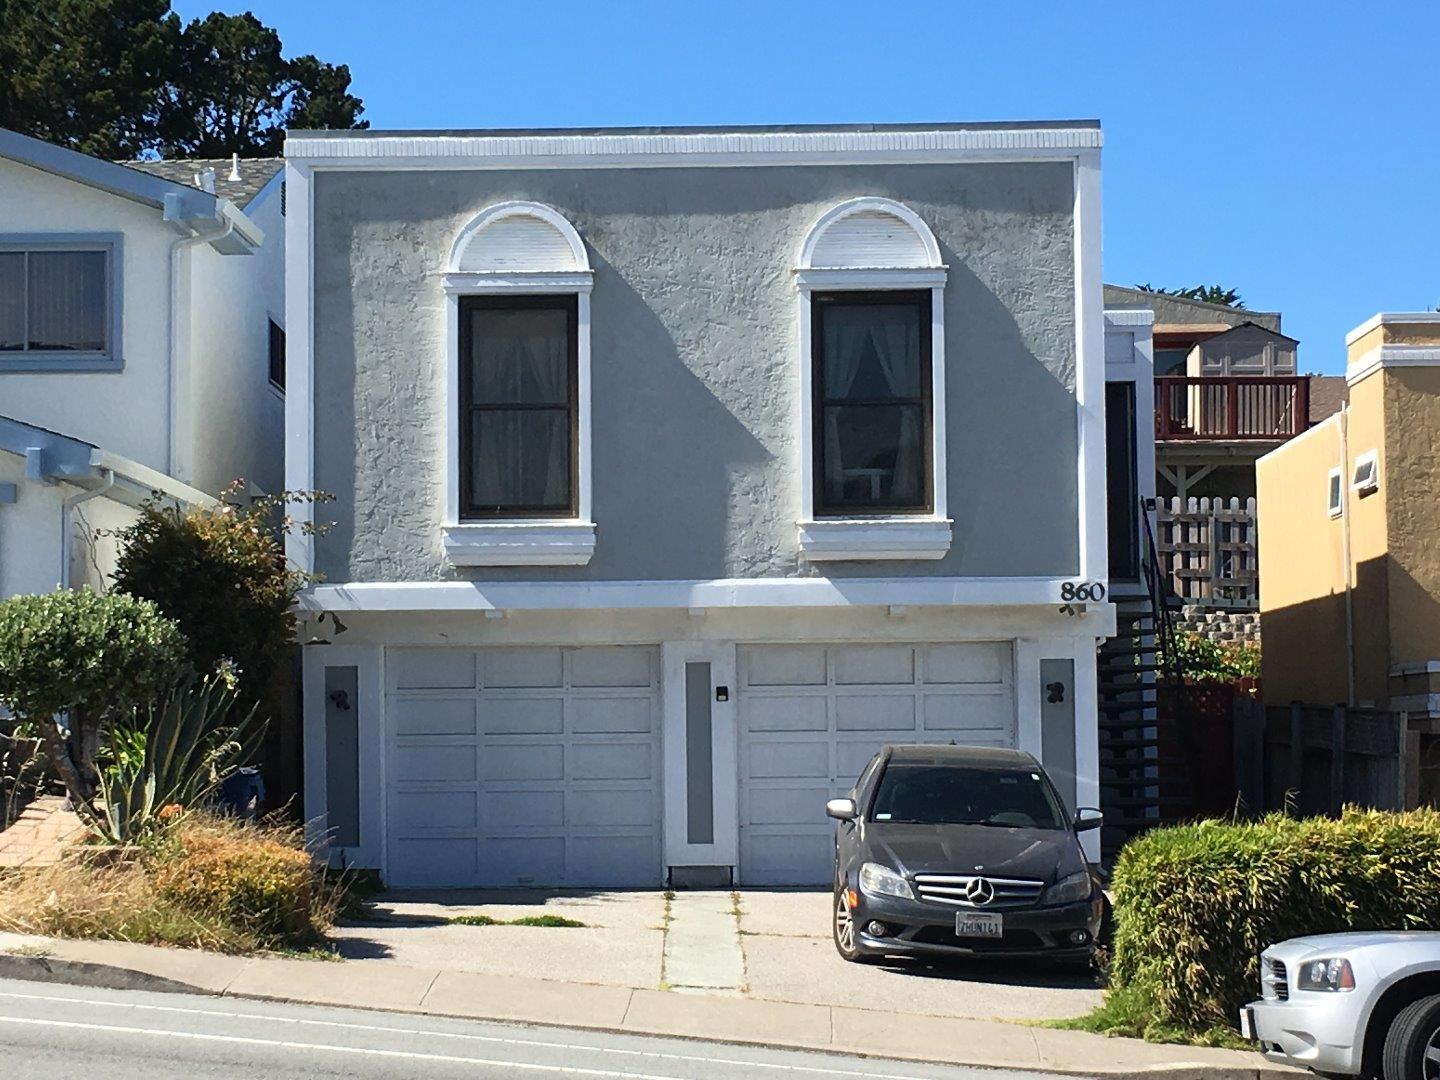 860 King Drive, Daly City, CA, 94015   Better Homes and Gardens Real ...